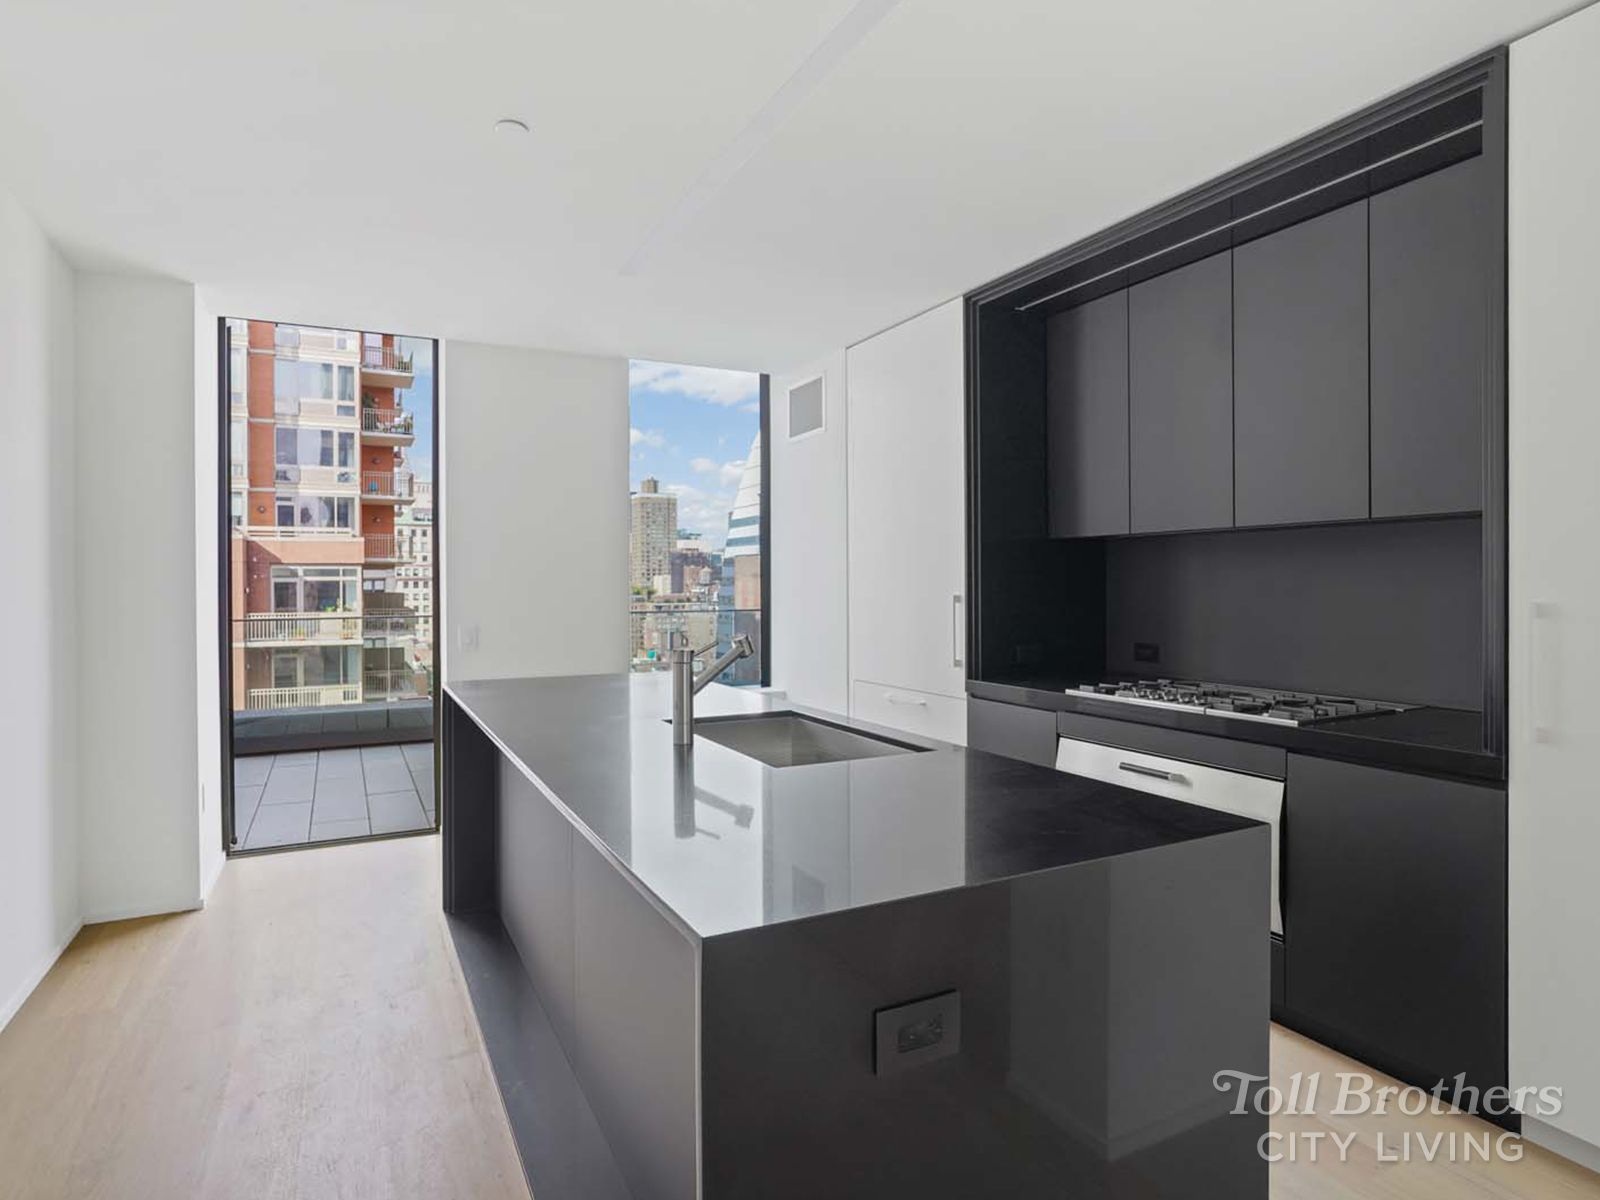 Kitchen featured in the N1302 By Toll Brothers in New York, NY